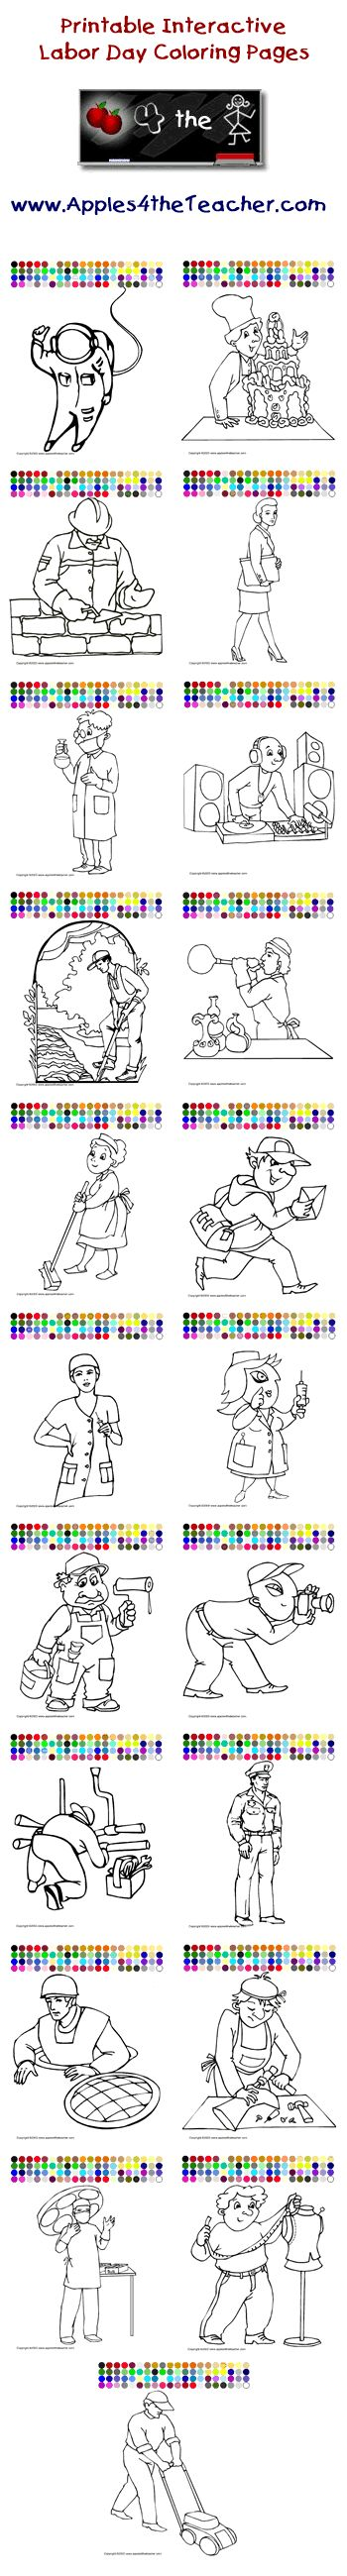 Apples4theteacher Coloring Pages : Labor day and coloring pages on pinterest